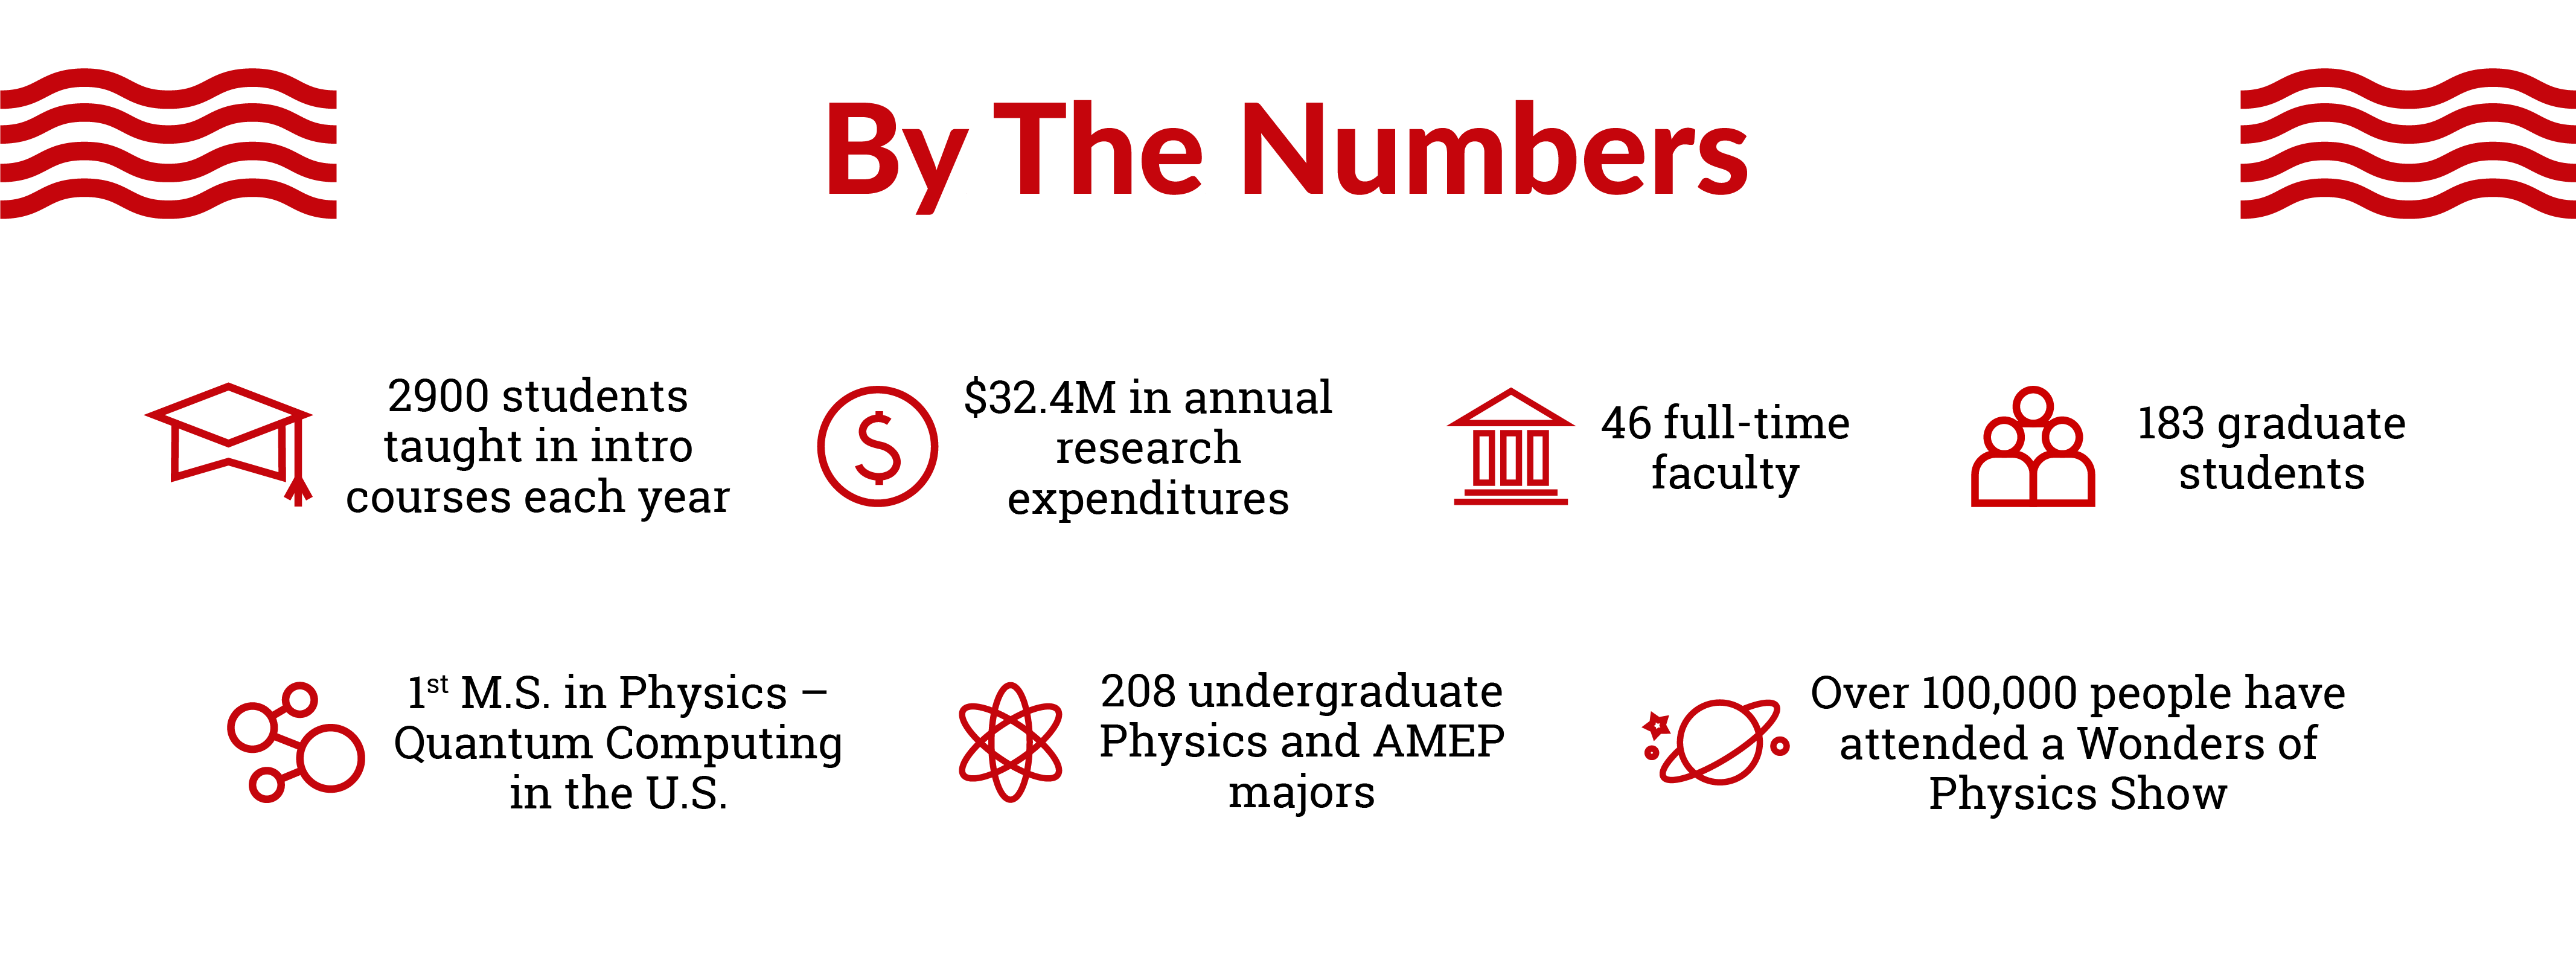 208 undergraduate Physics and AMEP majorsOver 100,000 people have attended a Wonders of Physics Show1st M.S. in Physics – Quantum Computing in the U.S. 183 graduate students46 full-time faculty $32.4M in annual research expenditures 2900 students taught in intro courses each year